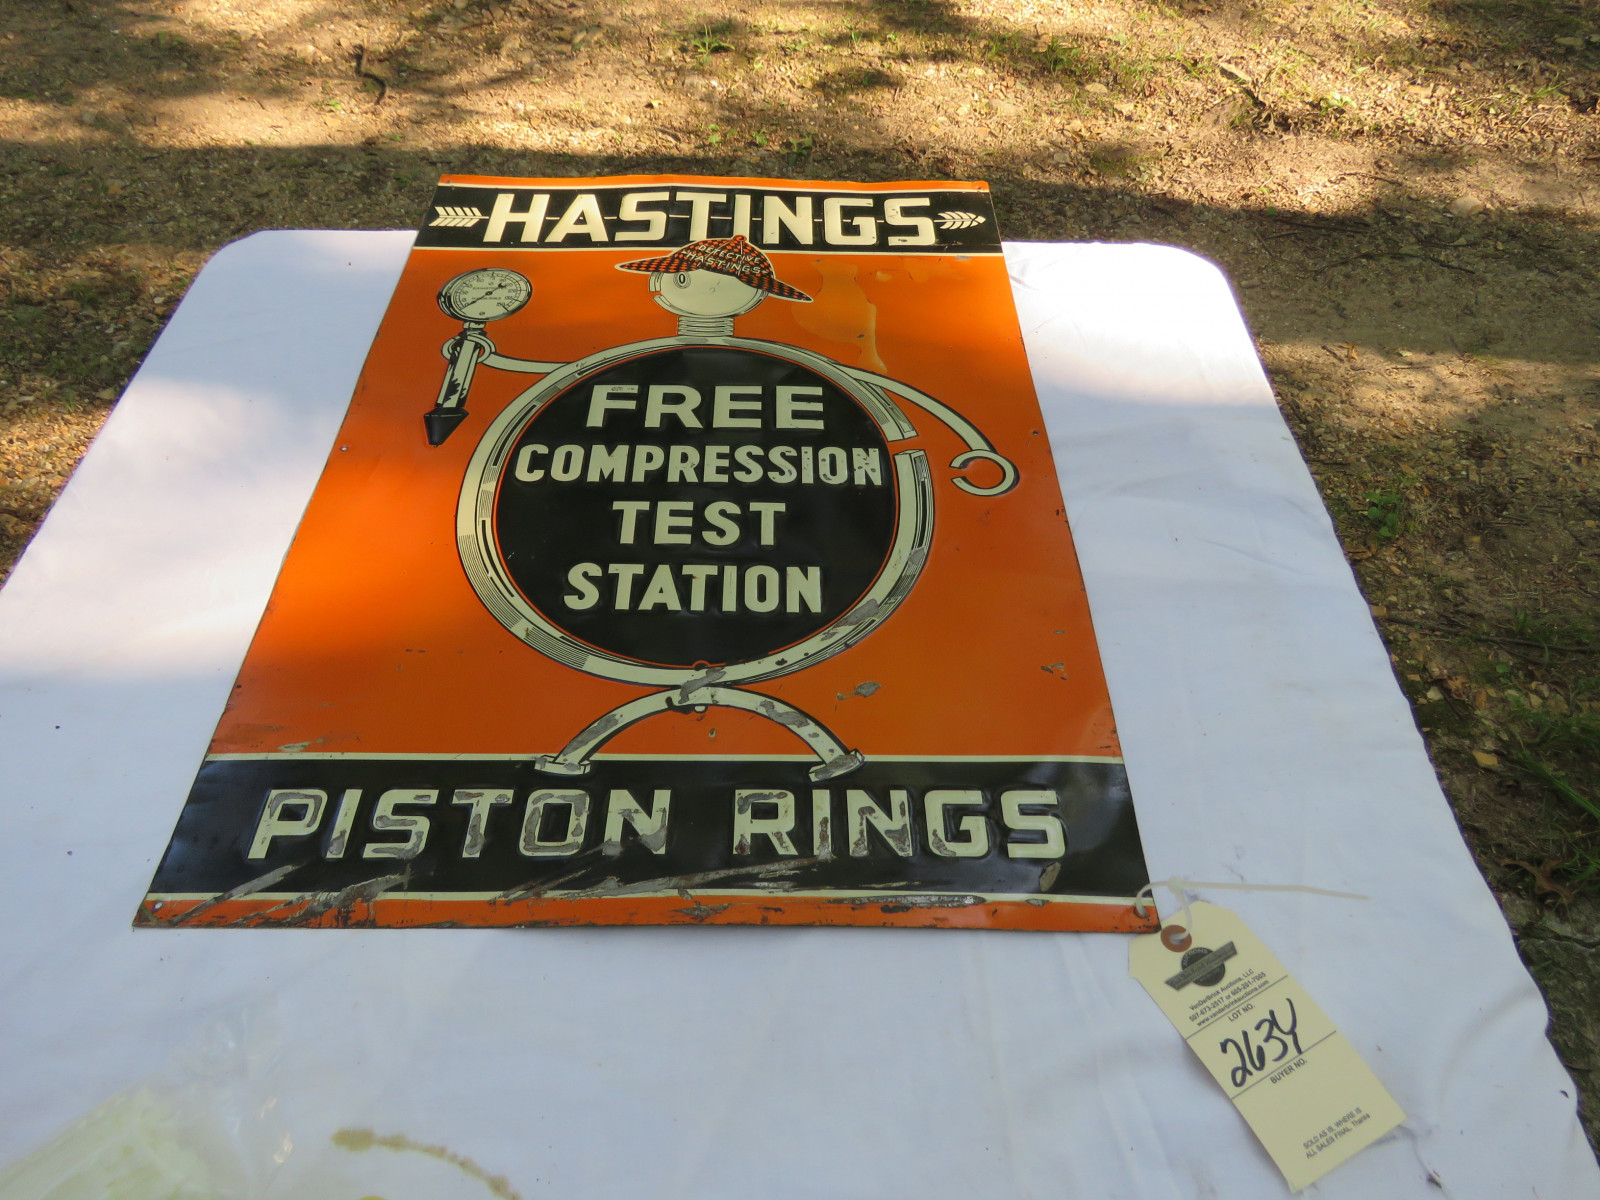 Hastings Piston Rings Painted Tin Sign 27.5X20 inches - Image 1